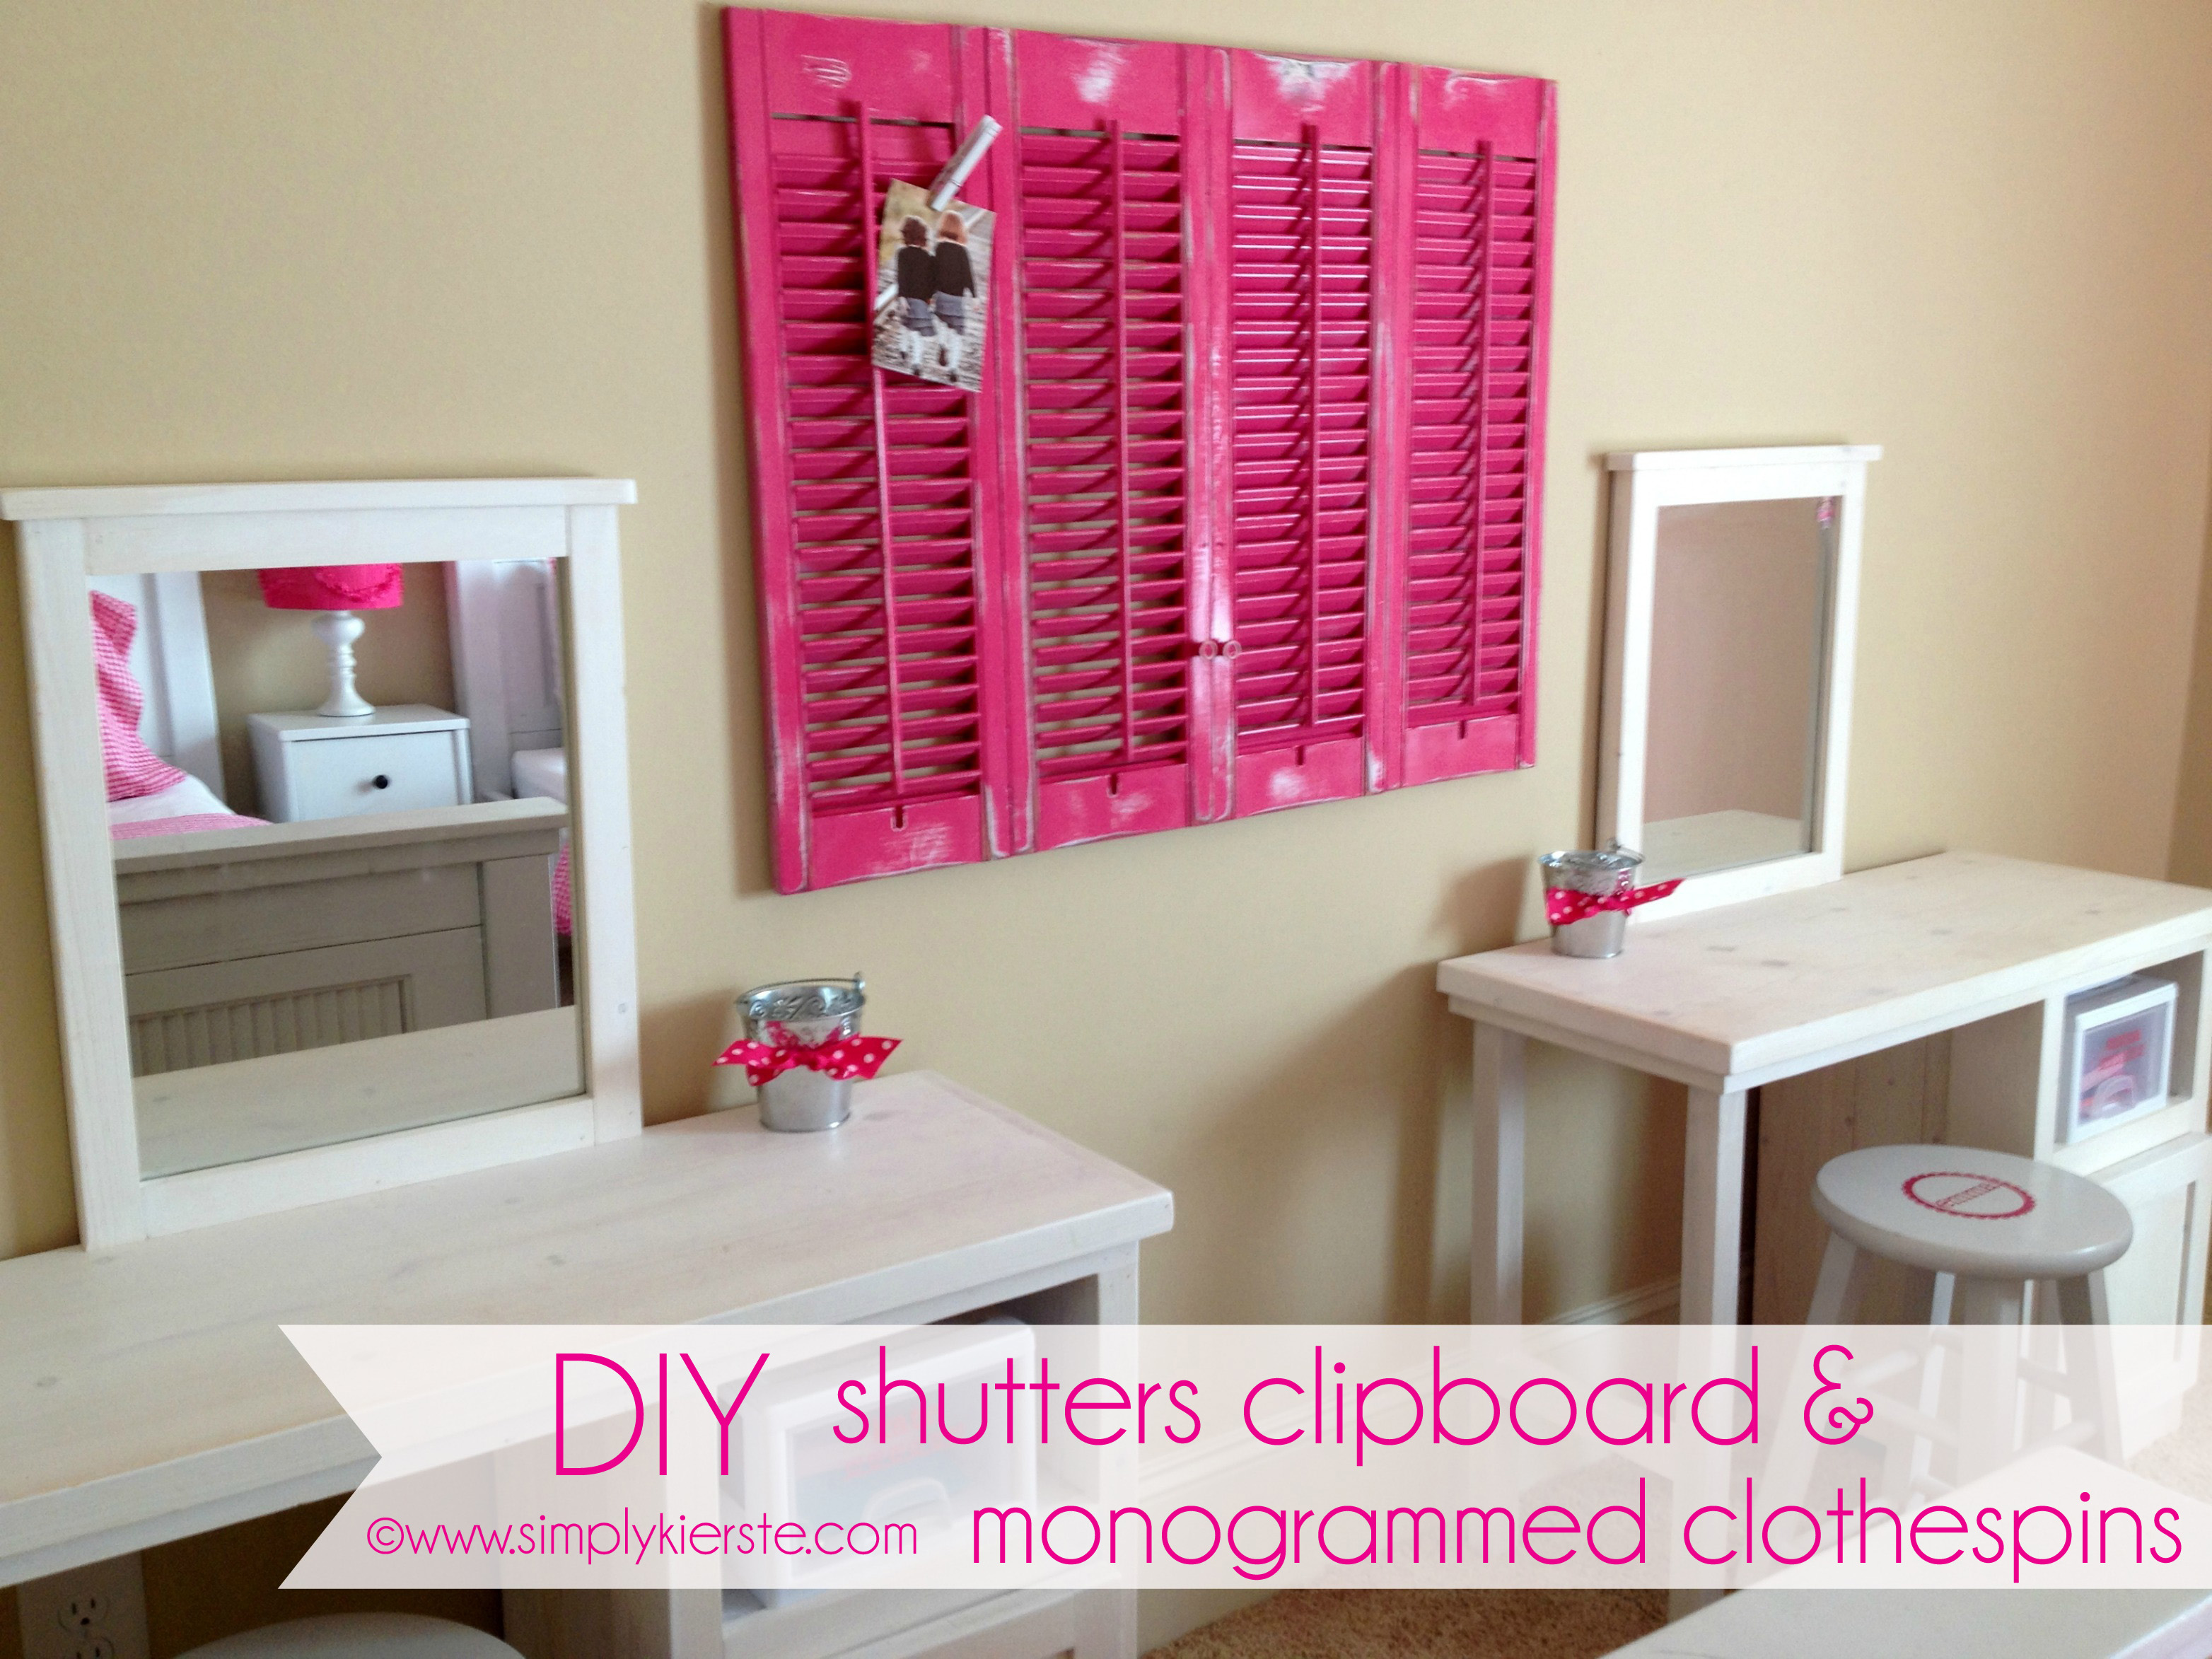 Best Diy Shutters Clipboard Monogrammed Clothespins This Month